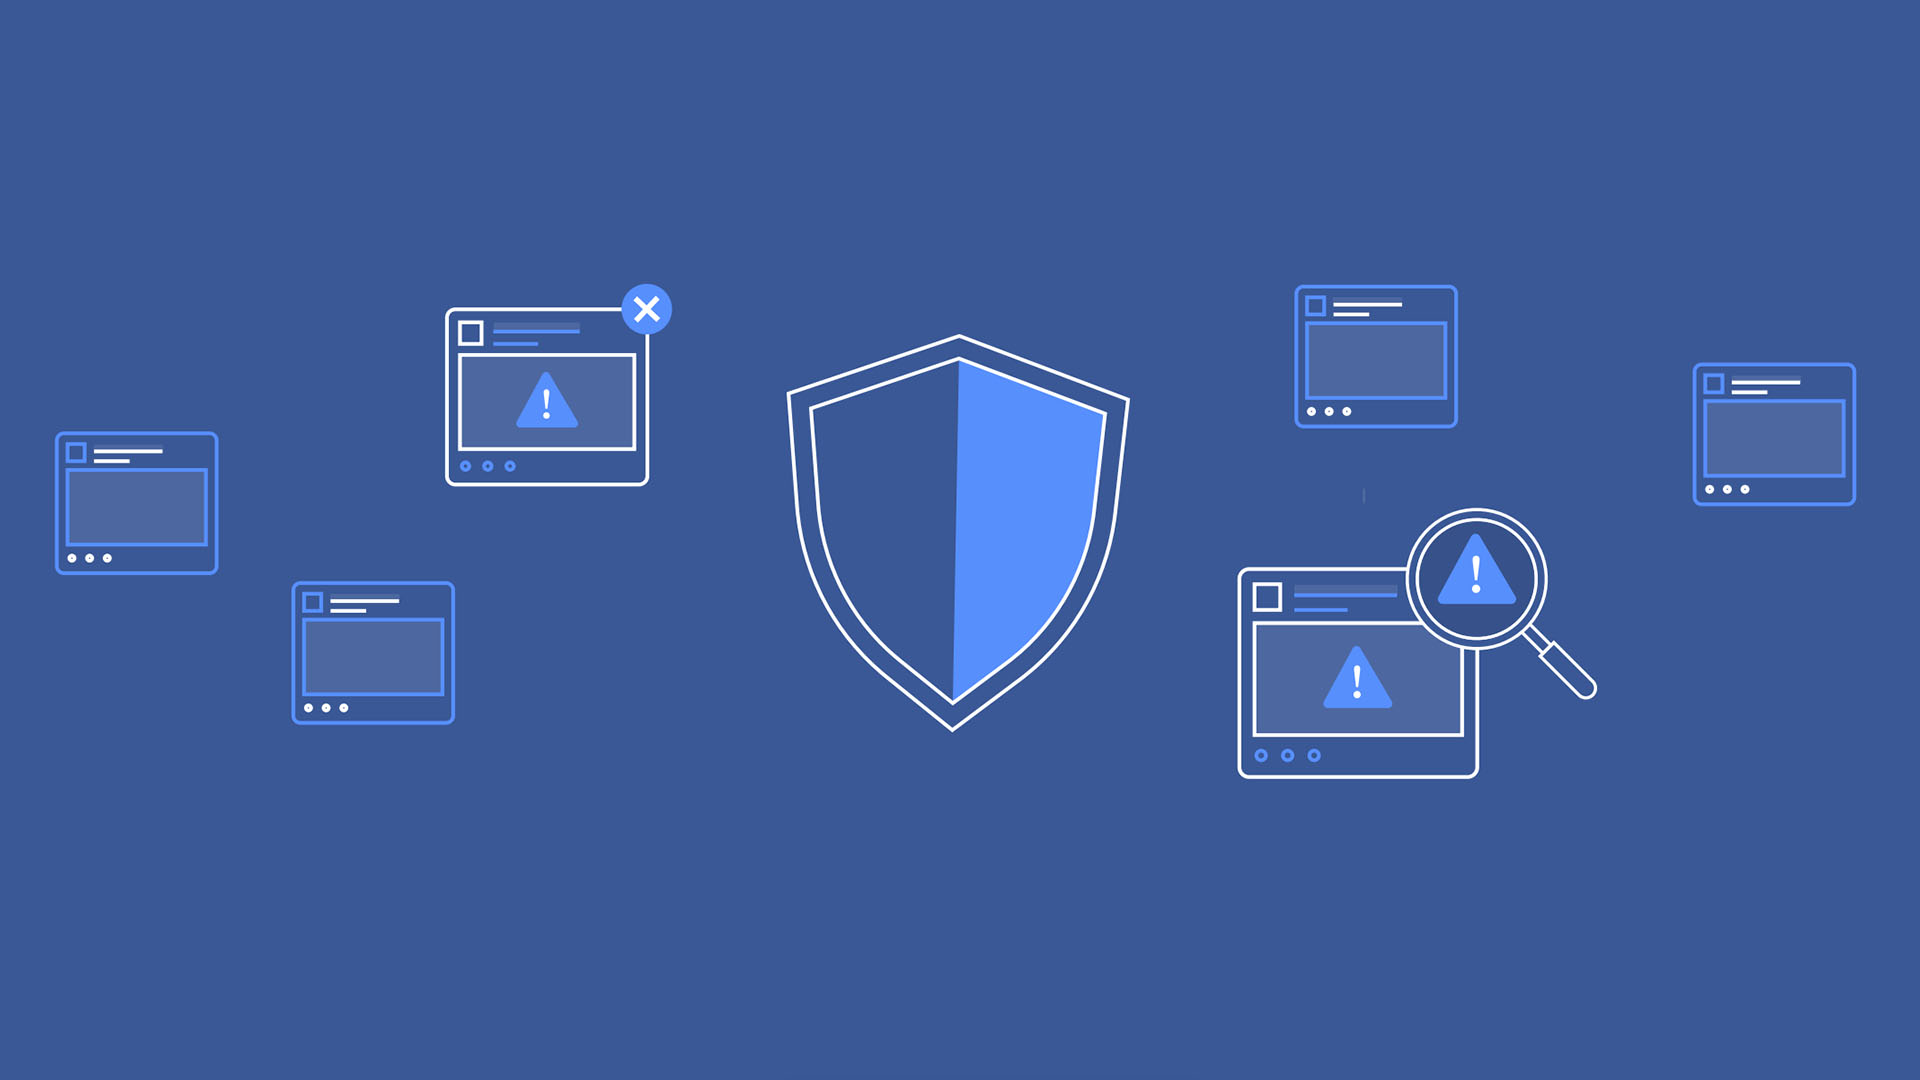 Scalable data classification for security, privacy - Facebook Engineering